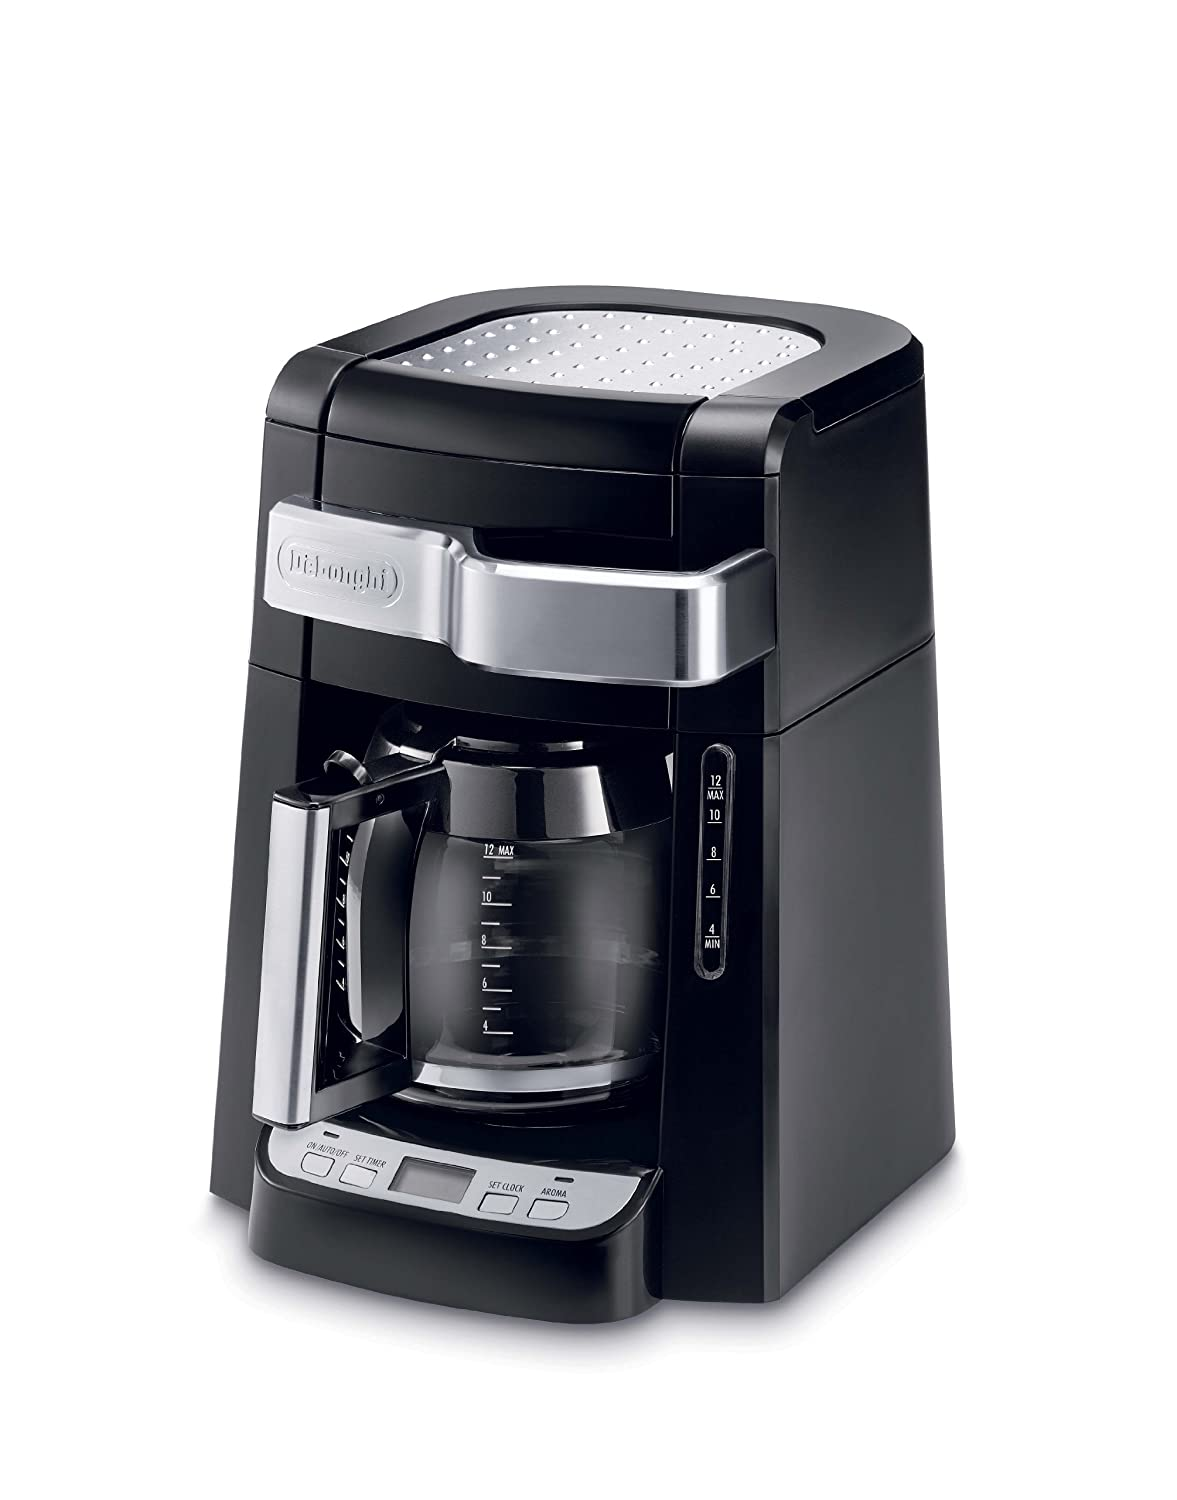 DeLonghi Coffee Maker DCF2212T: 12 Cups Enriched with Flavor